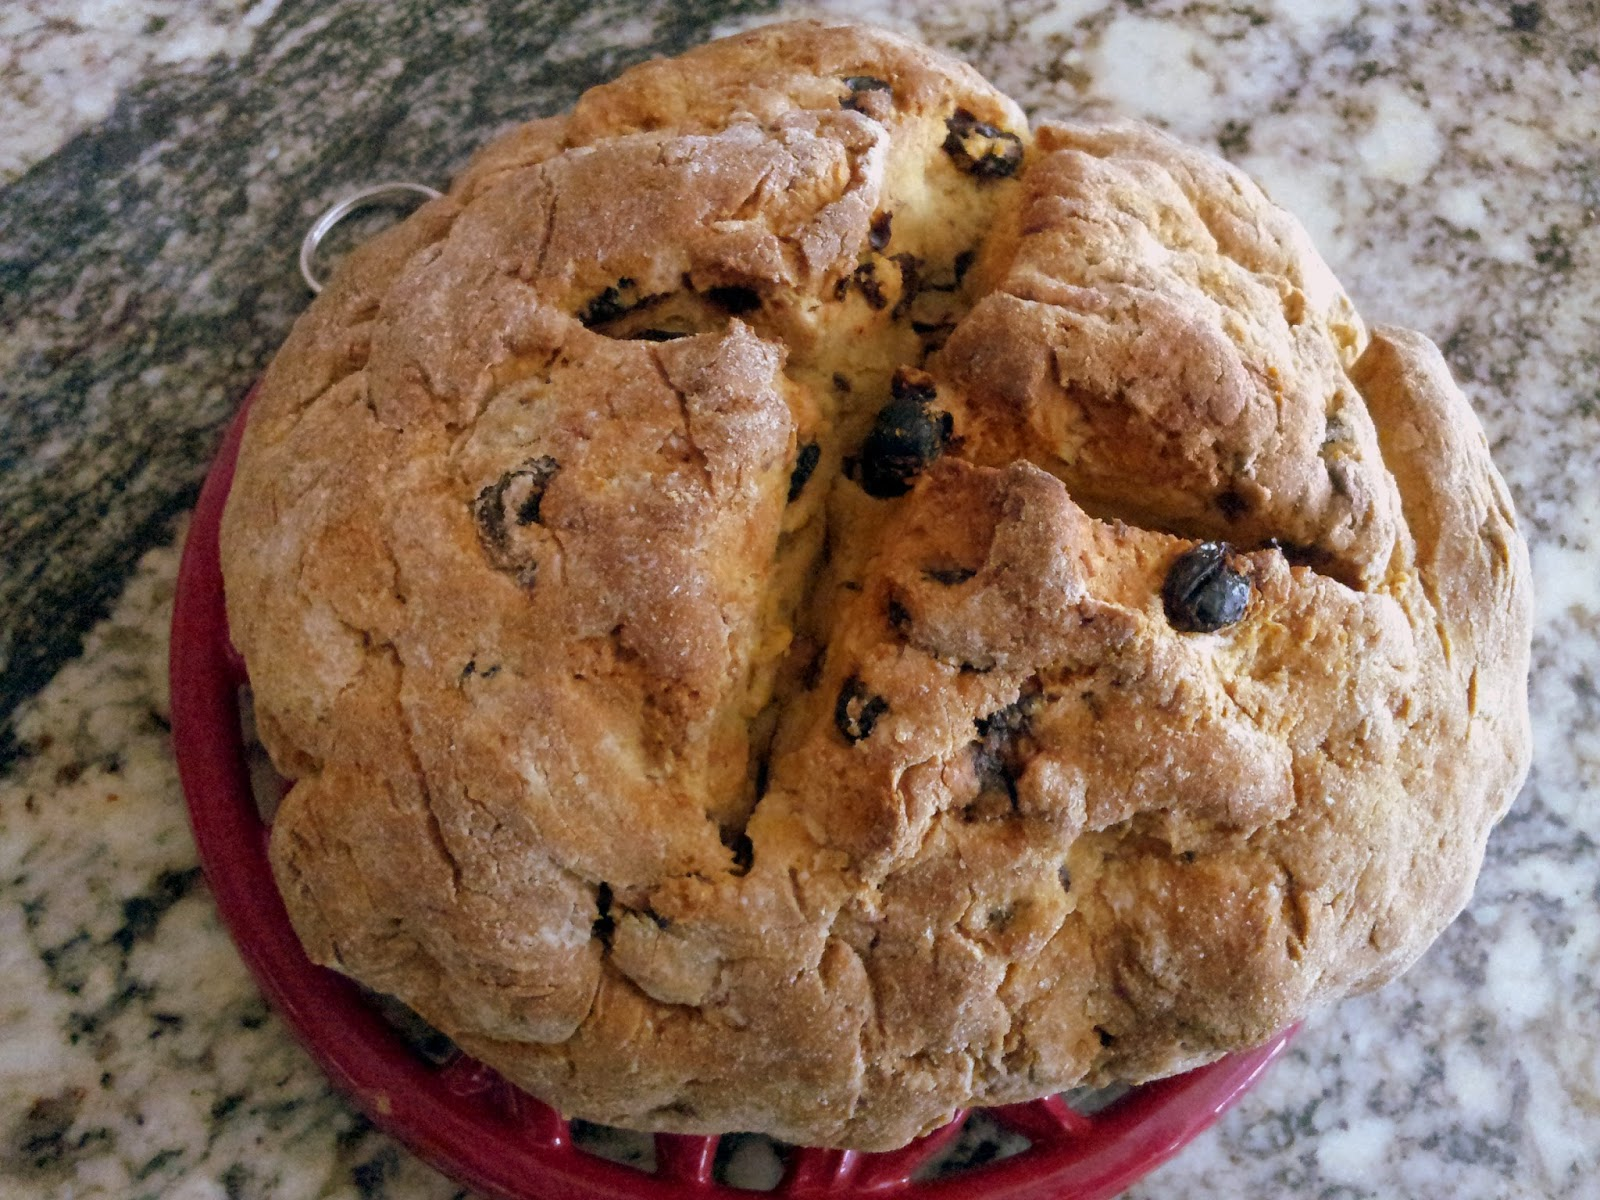 ... Fiori Favoriti: Happy St. Patrick's Day! Gluten Free Irish Soda Bread